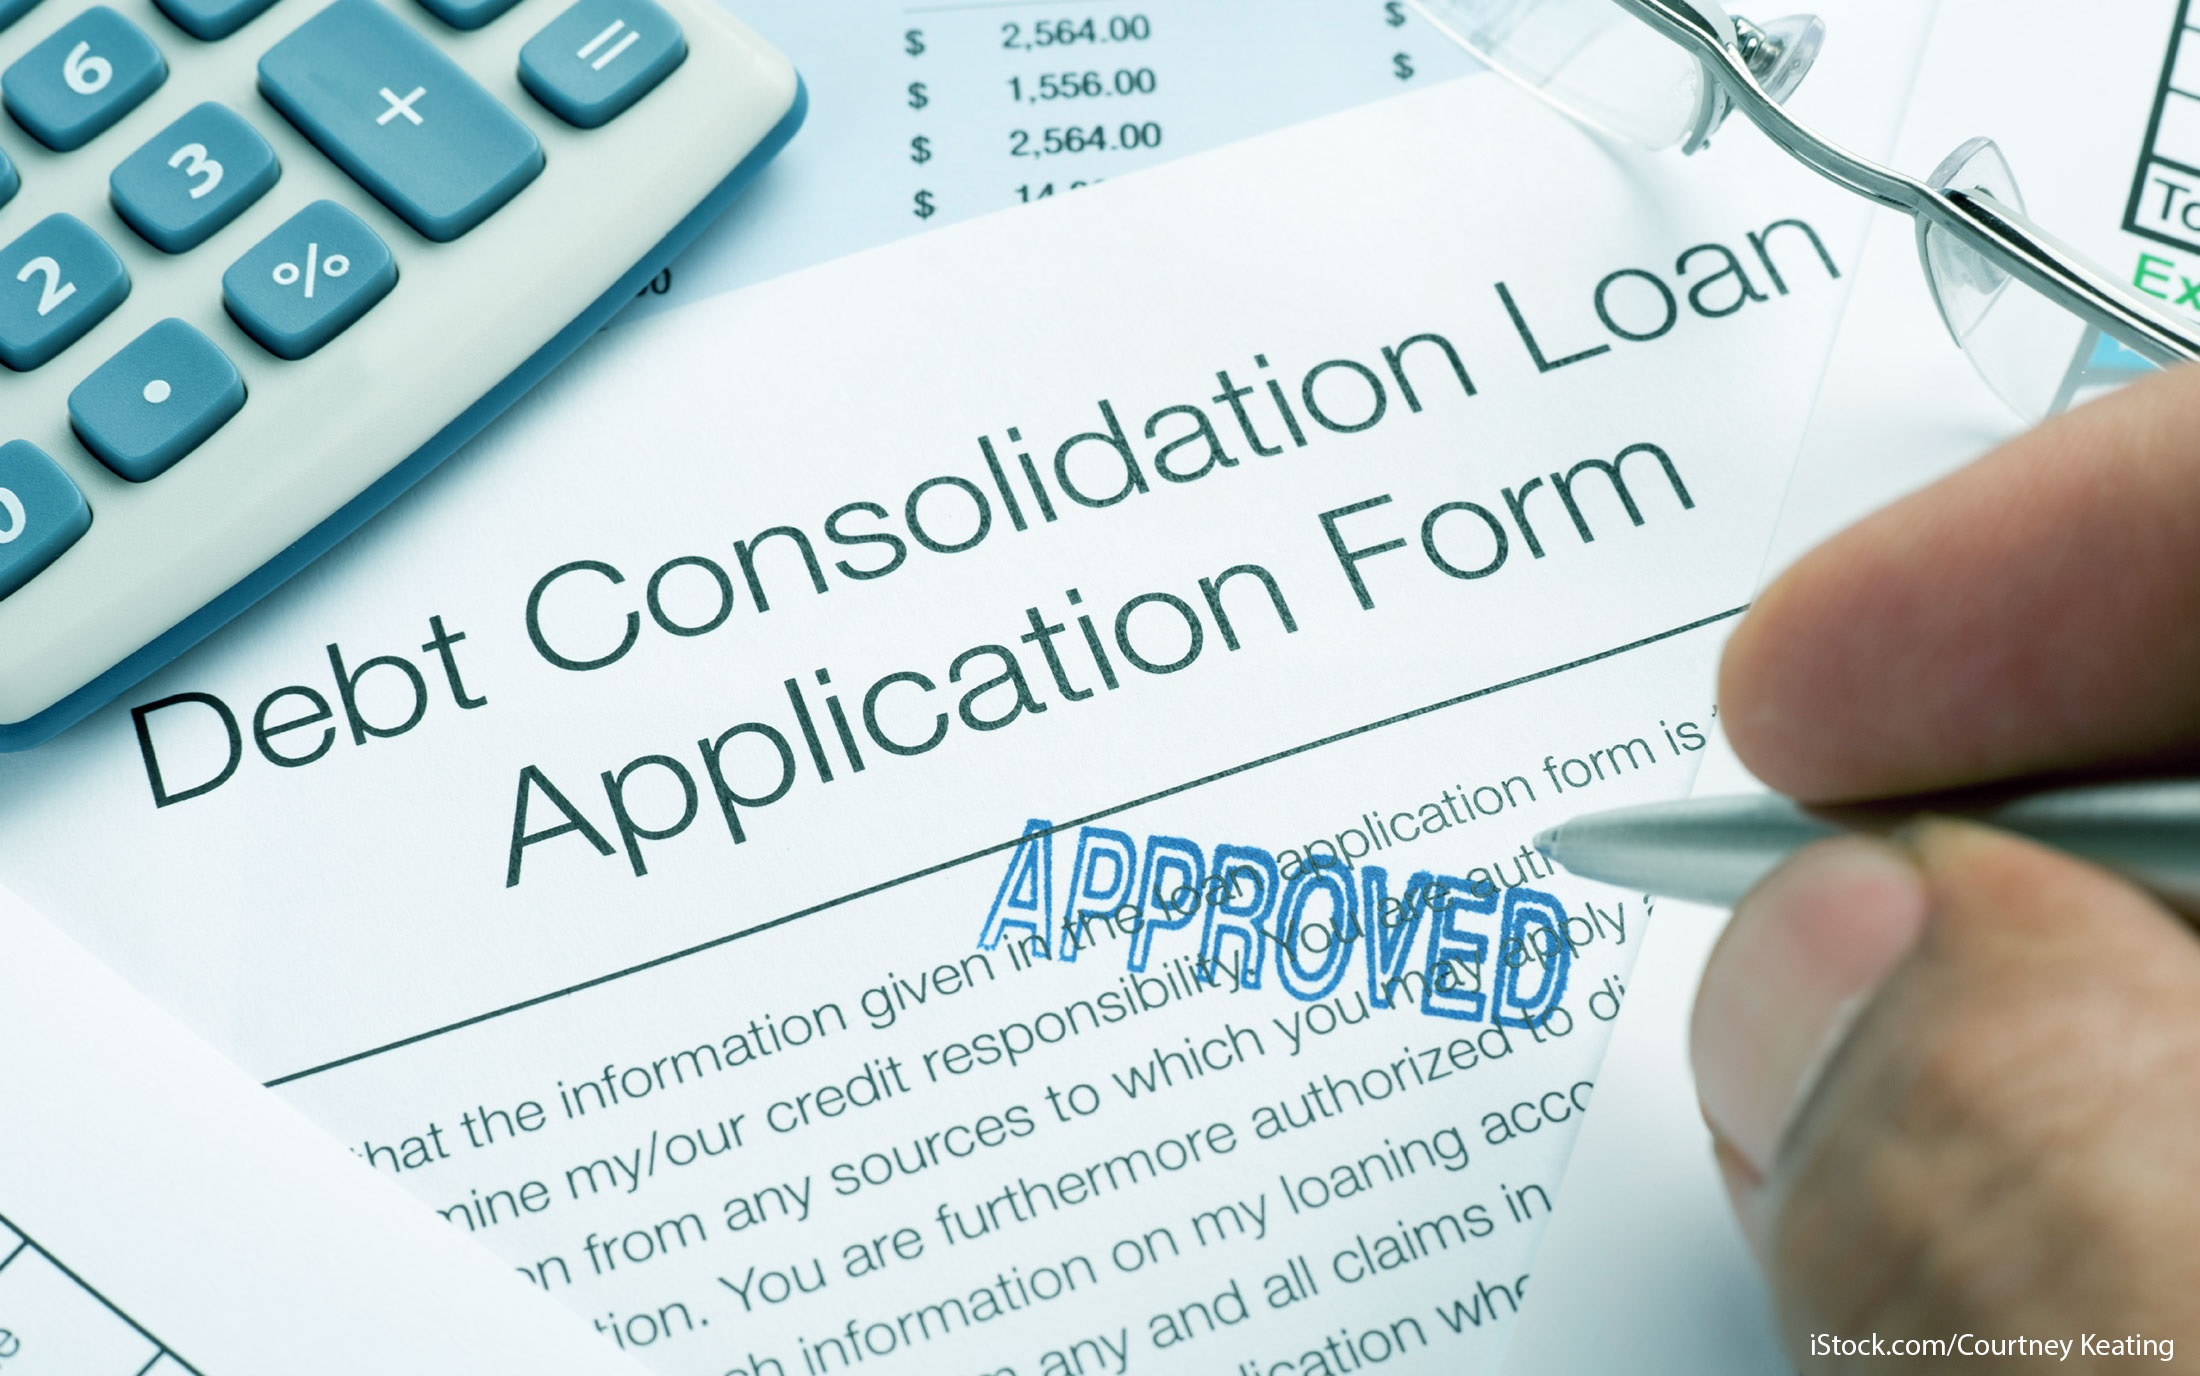 Correct Debt Collection Laws Should be Followed For Student Loan Debt Collection